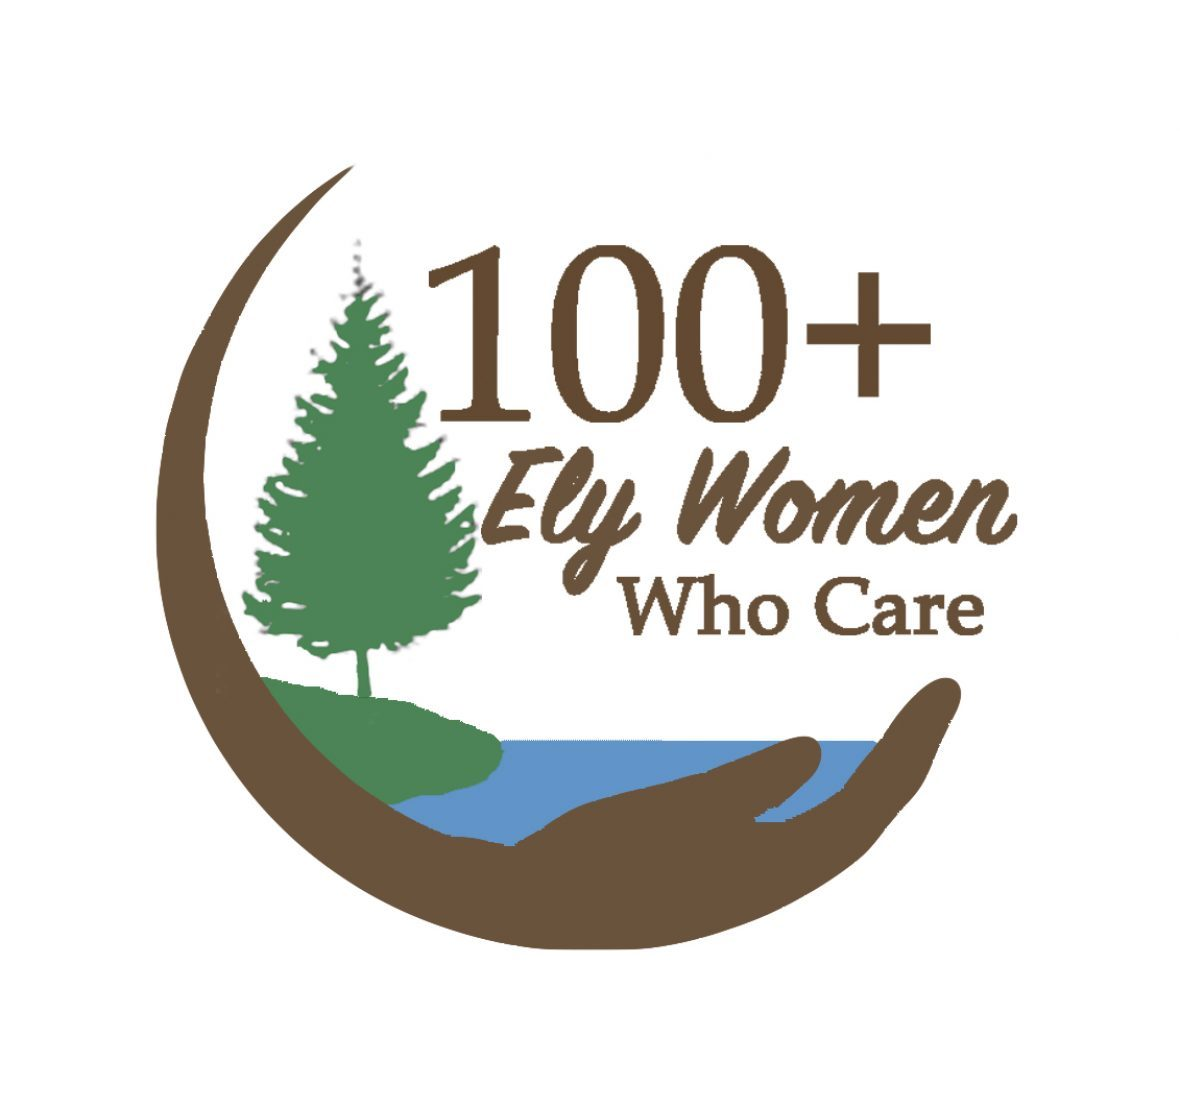 100+ Ely Women Who Care